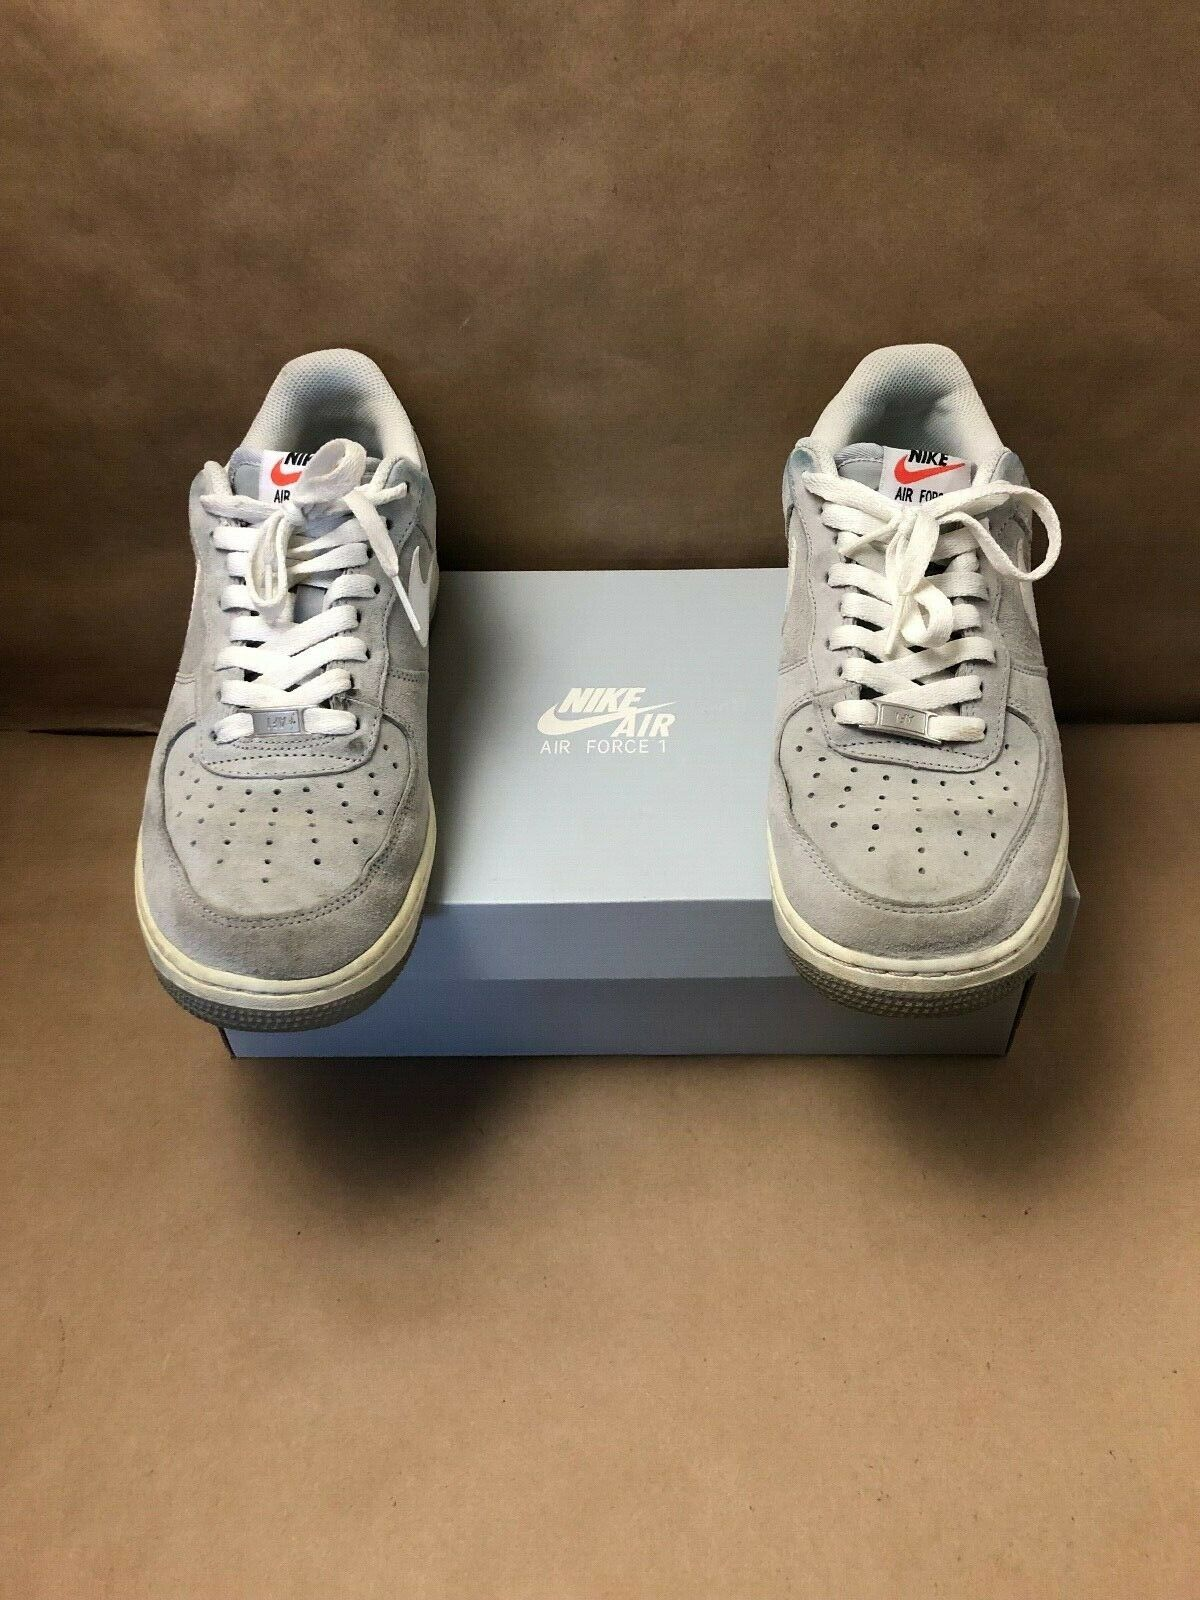 finest selection 7027c 92b96 Nike Air Force 1 Suede Pack Wolf Grey White 488298-065 Sz 10 for sale  online   eBay